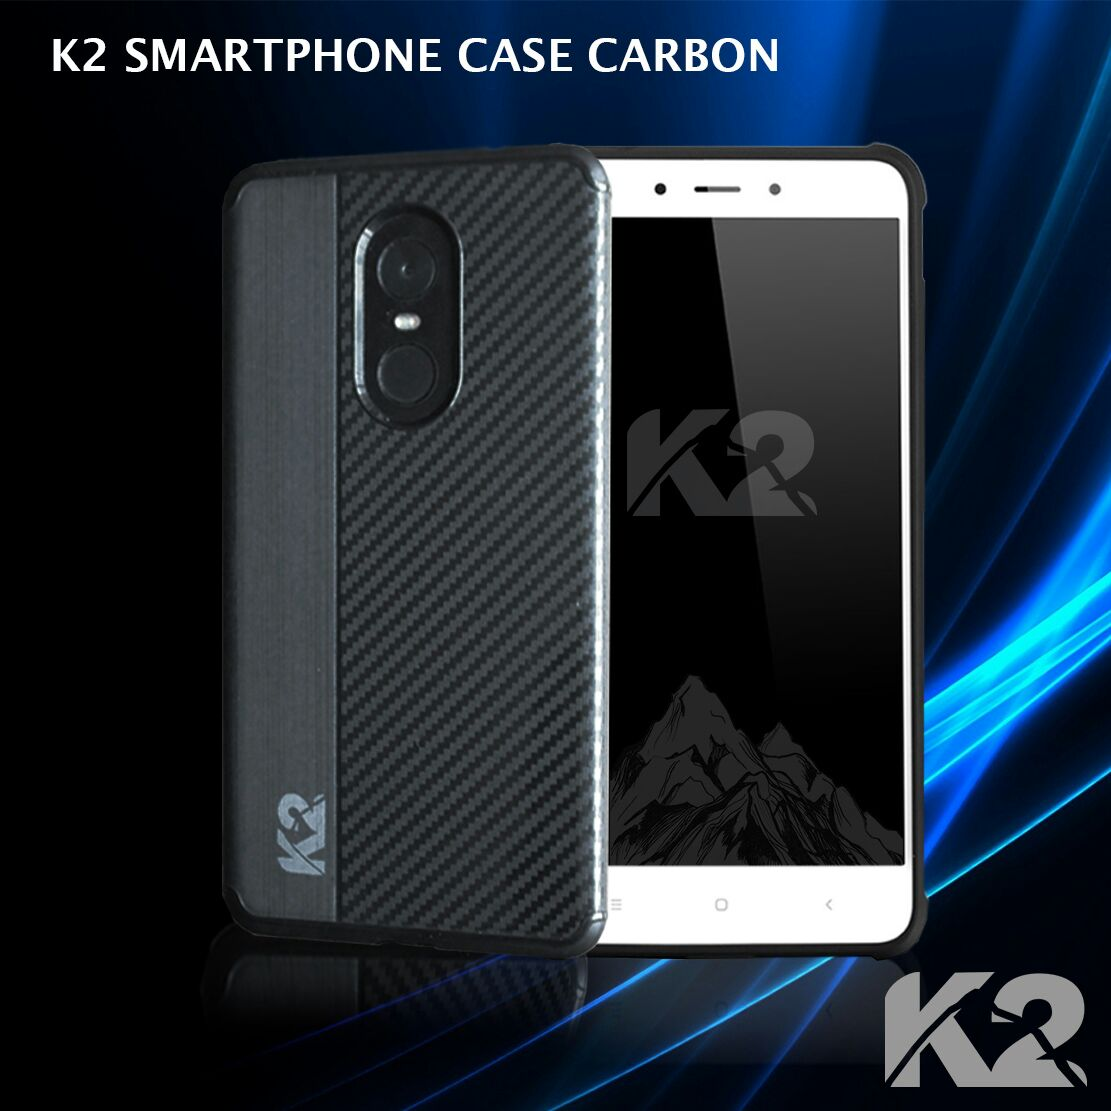 SHINING CARBON CASE K2 OPPO A39 F3 INDO SAMSUNG J1 ACE